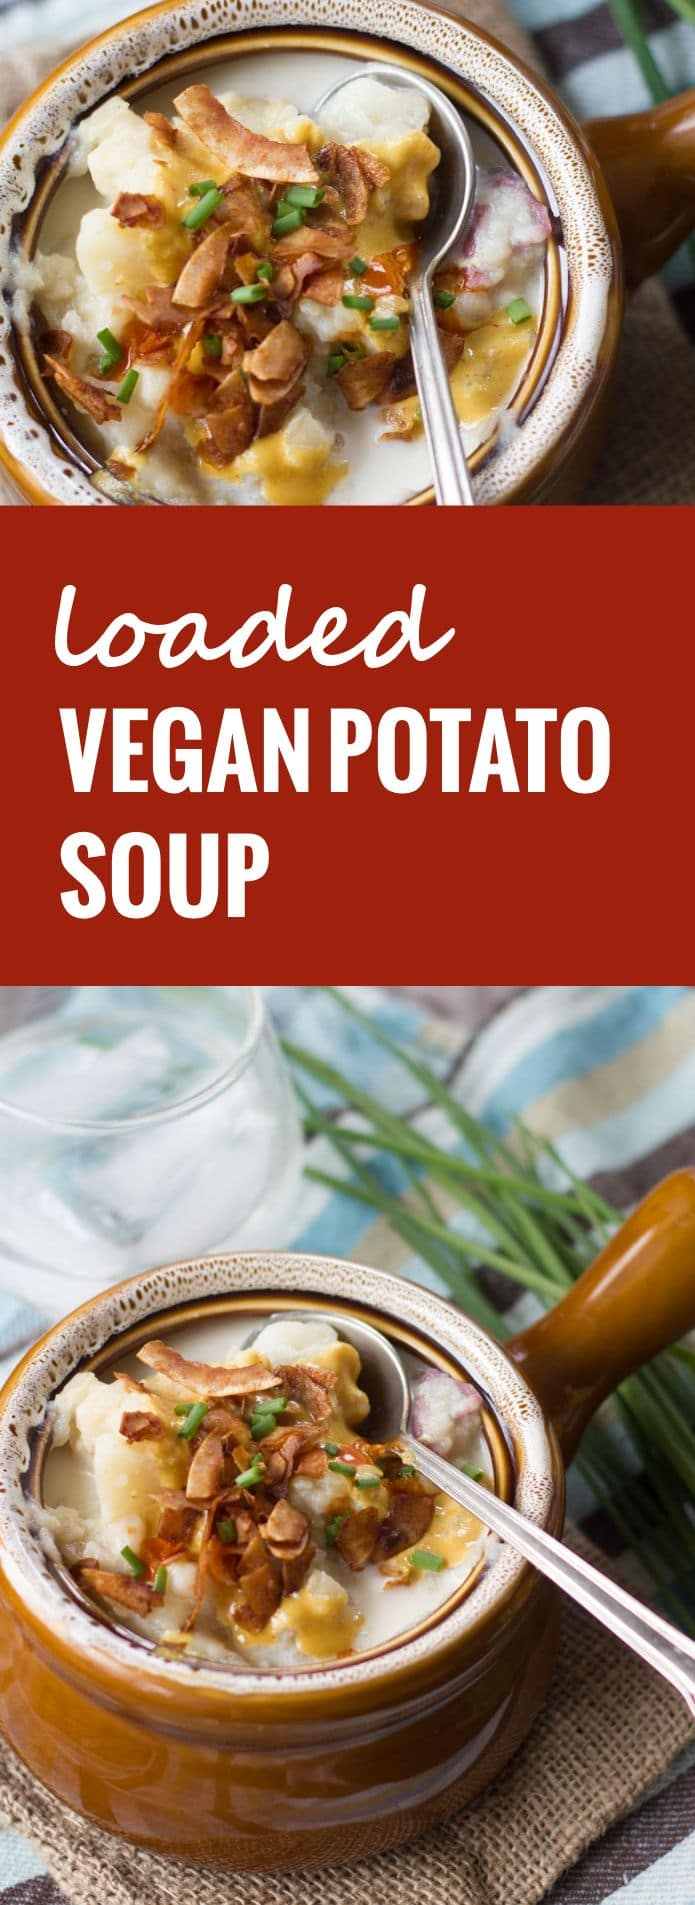 vegan-potato-soup-long